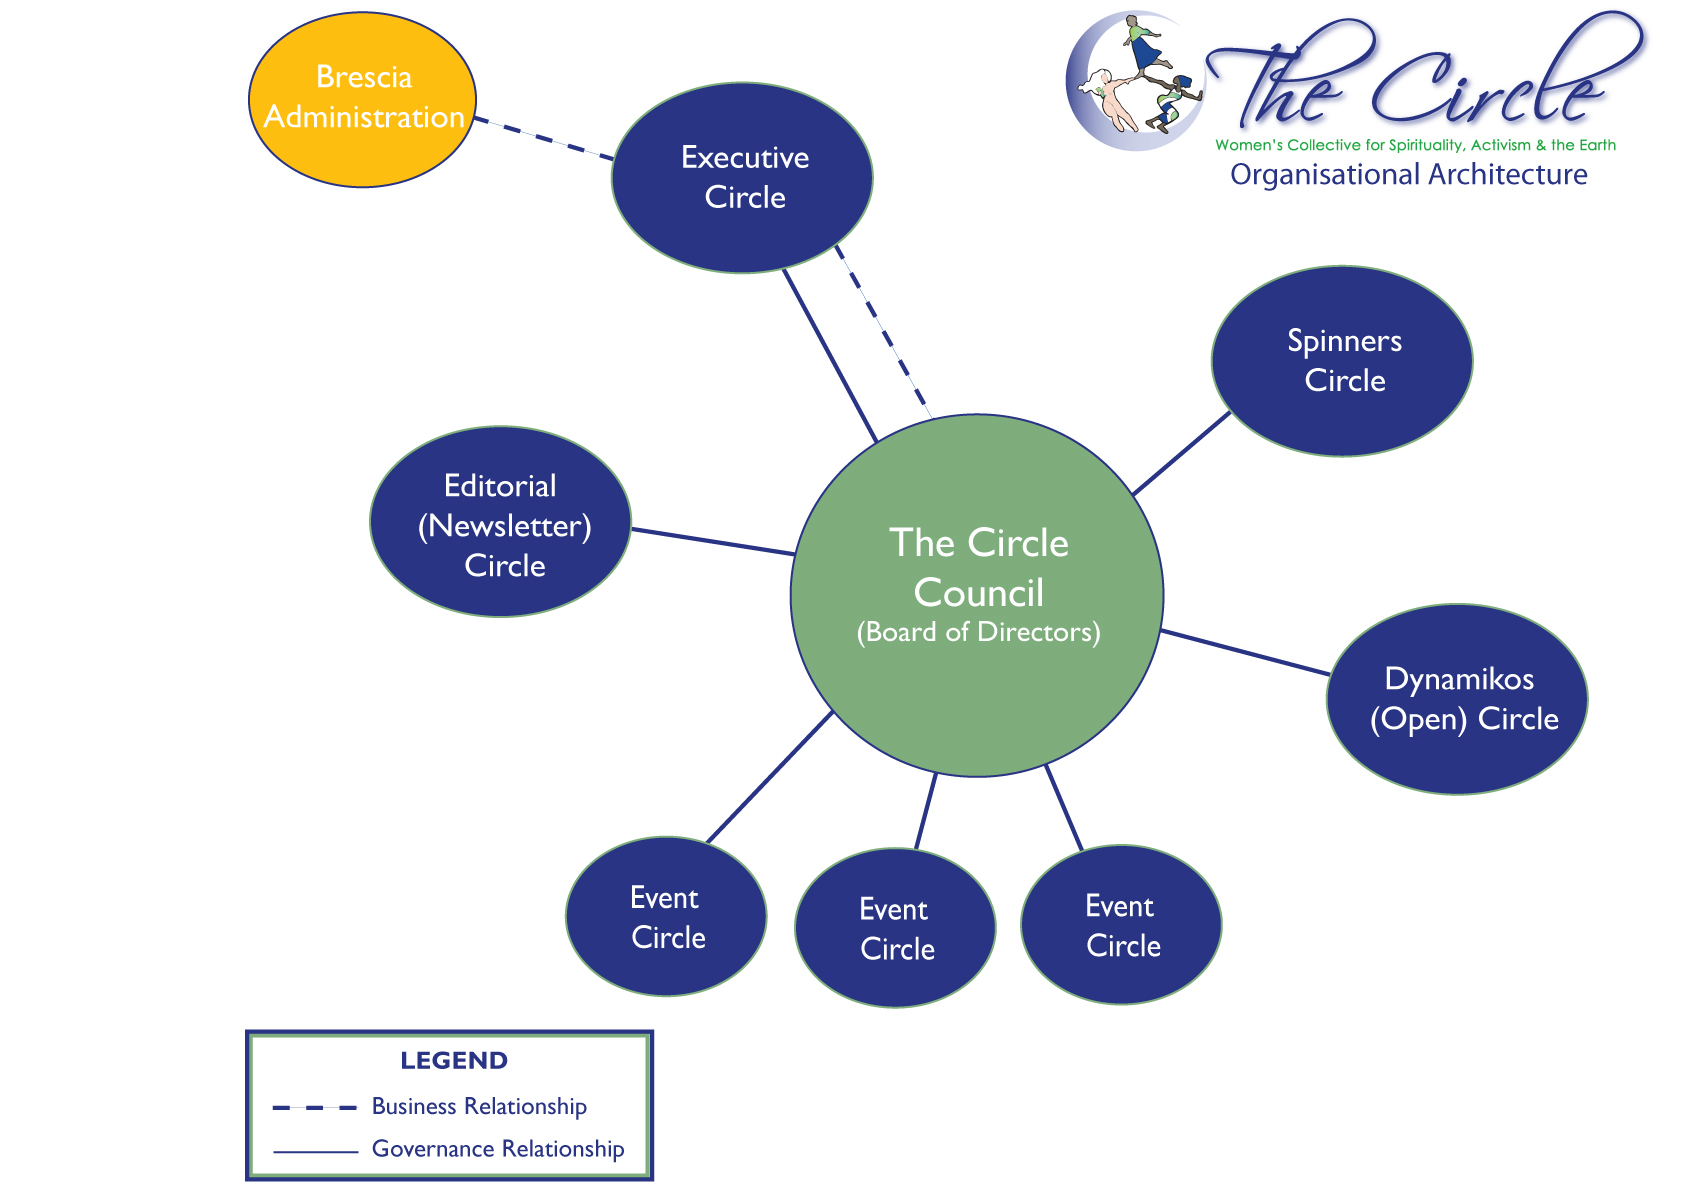 The_Circle_Organisational_Architecture